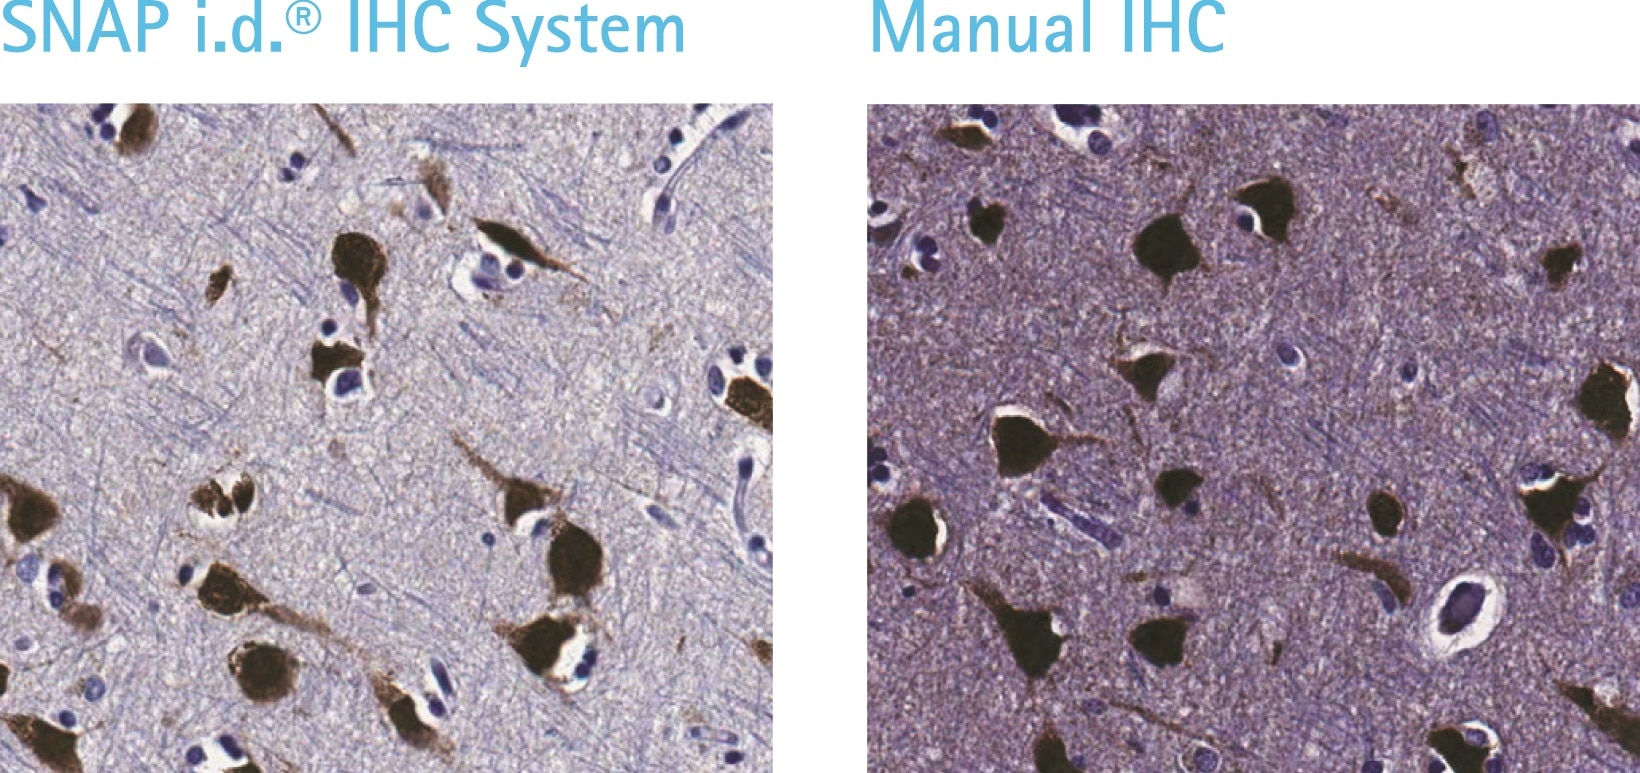 Detection of NeuN in human cerebral cortex (FFPE): SNAP i.d.® 2.0 IHC System (left) vs. standard manual IHC protocol (right).